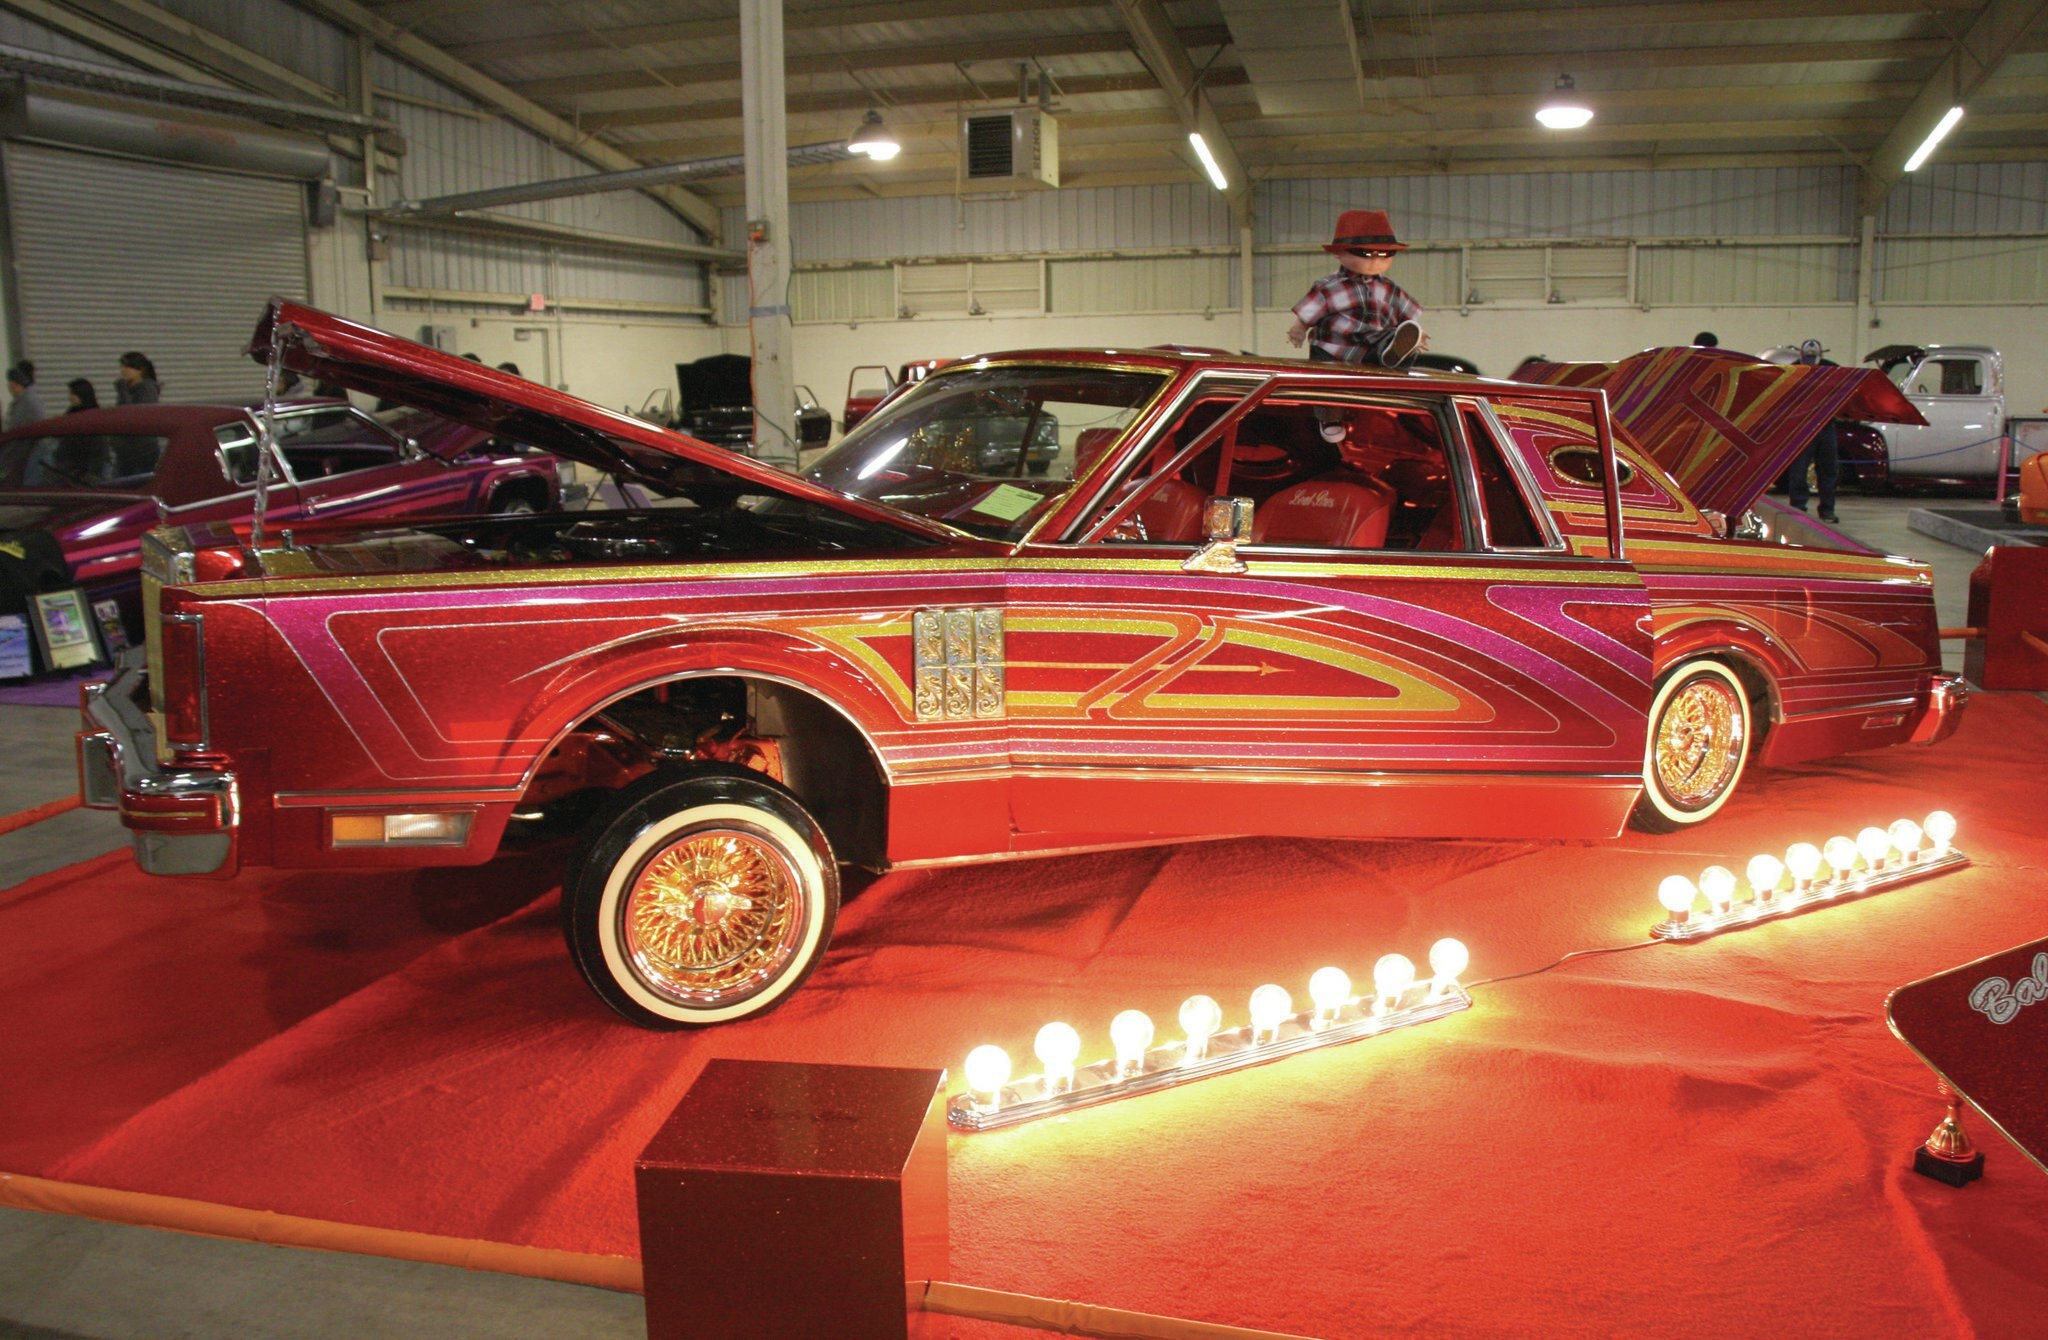 tejano-super-show-lowrider-on-display-081